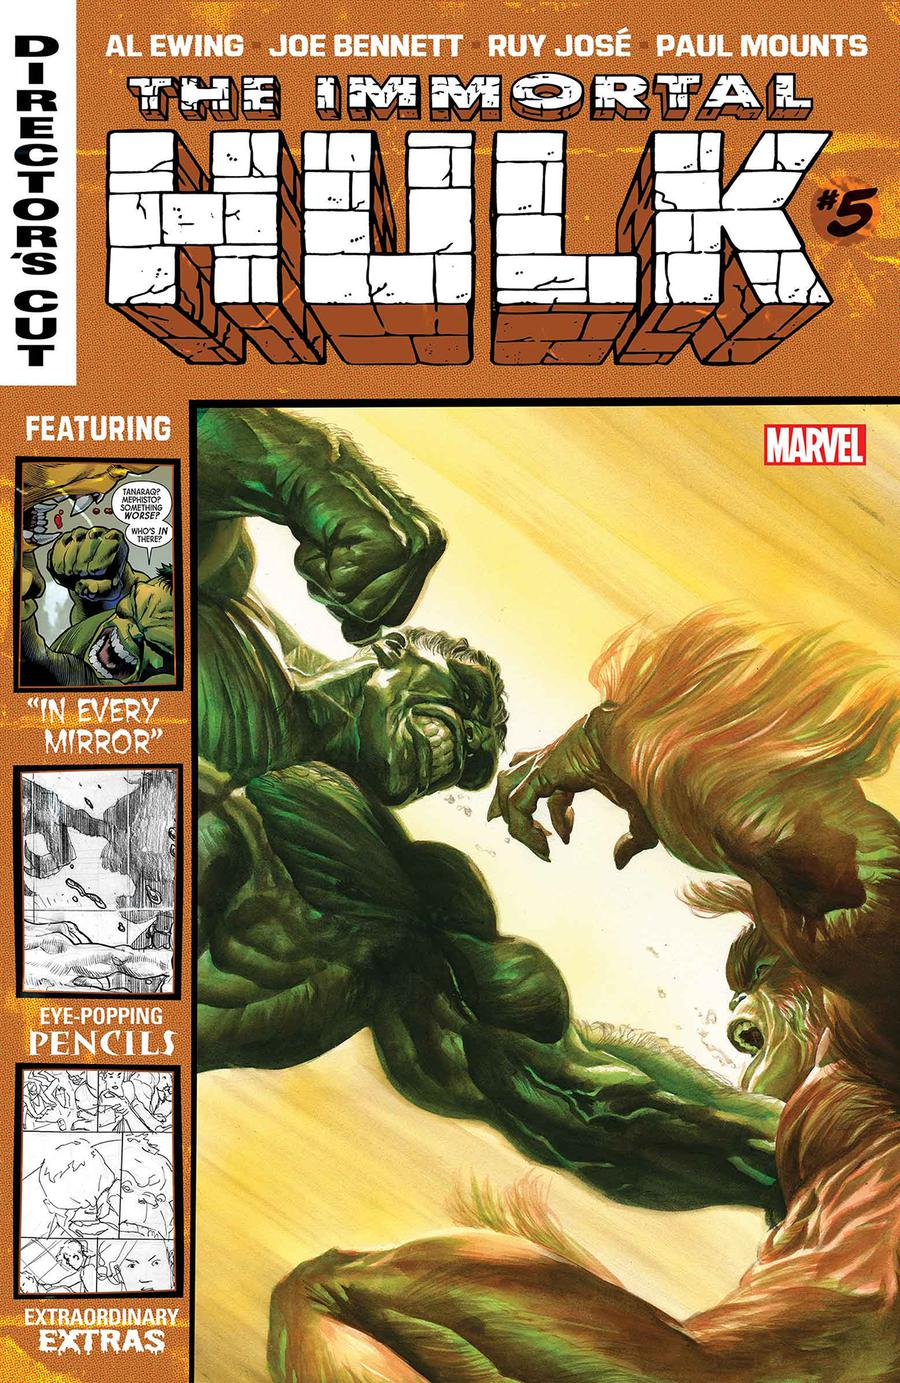 Immortal Hulk Directors Cut #5